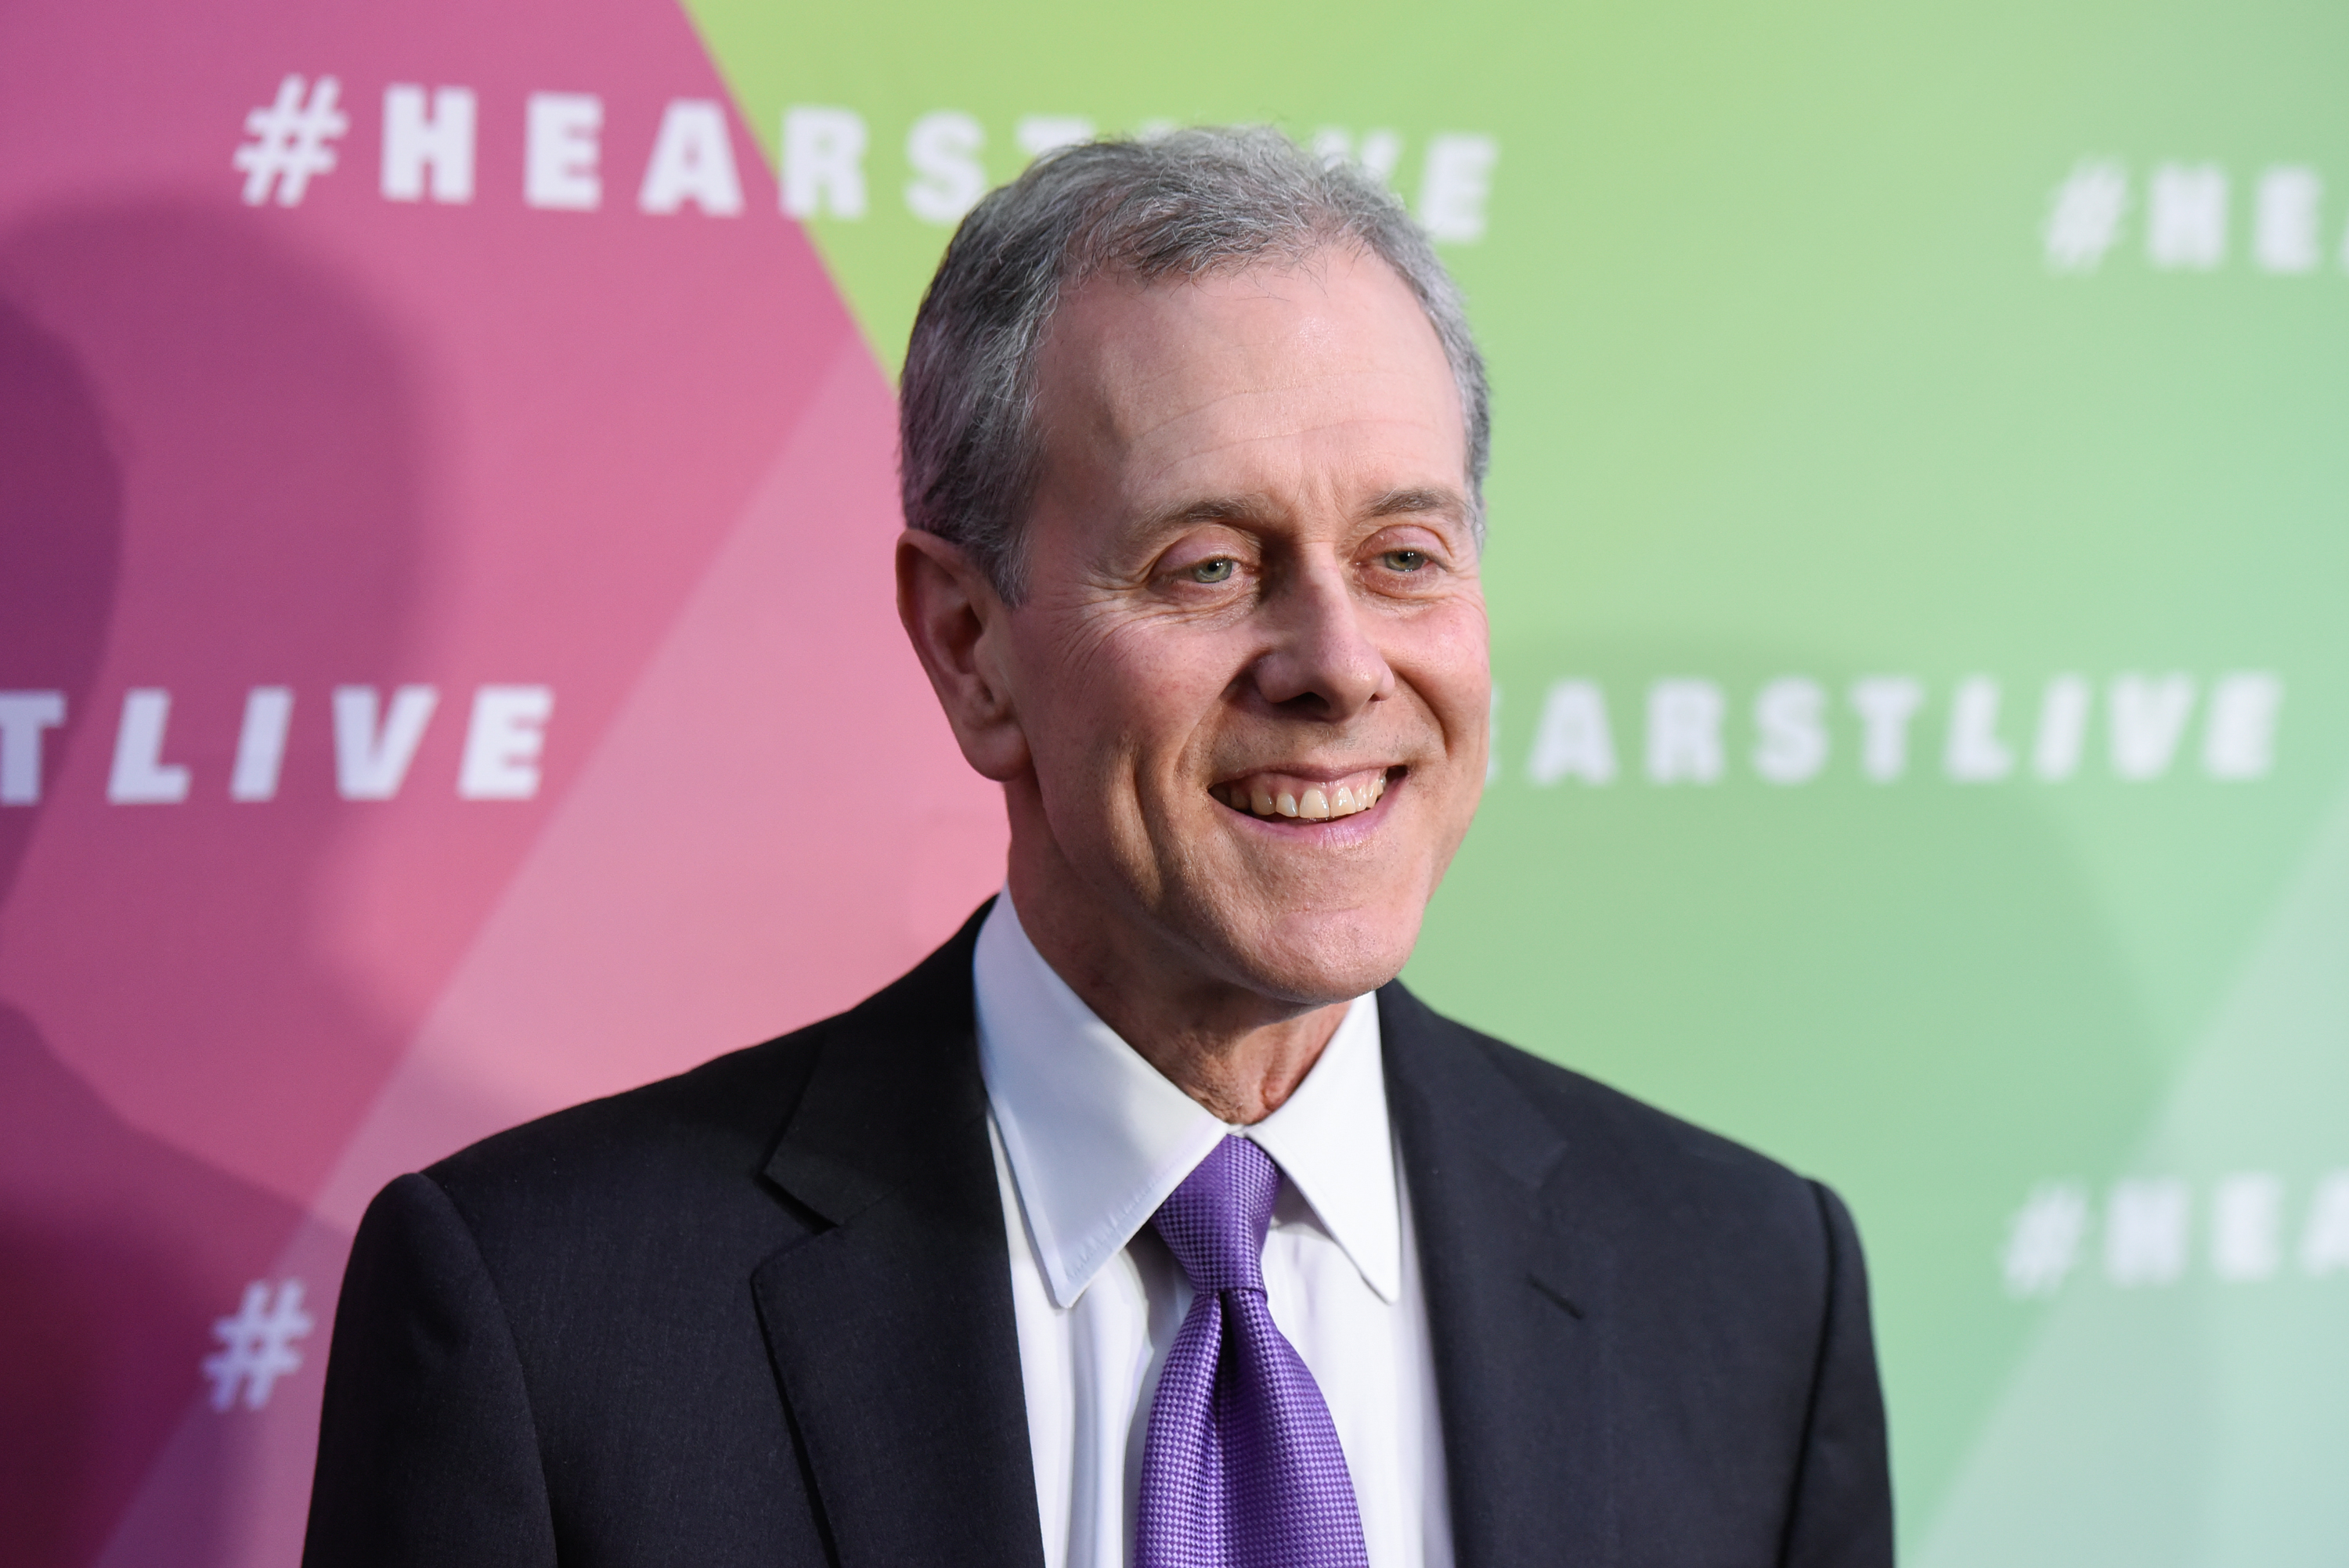 Steven Swartz, President and CEO of Hearst, attends the Hearst launch of HearstLive, a multimedia news installation at Hearst Tower on September 27, 2016 in New York City.